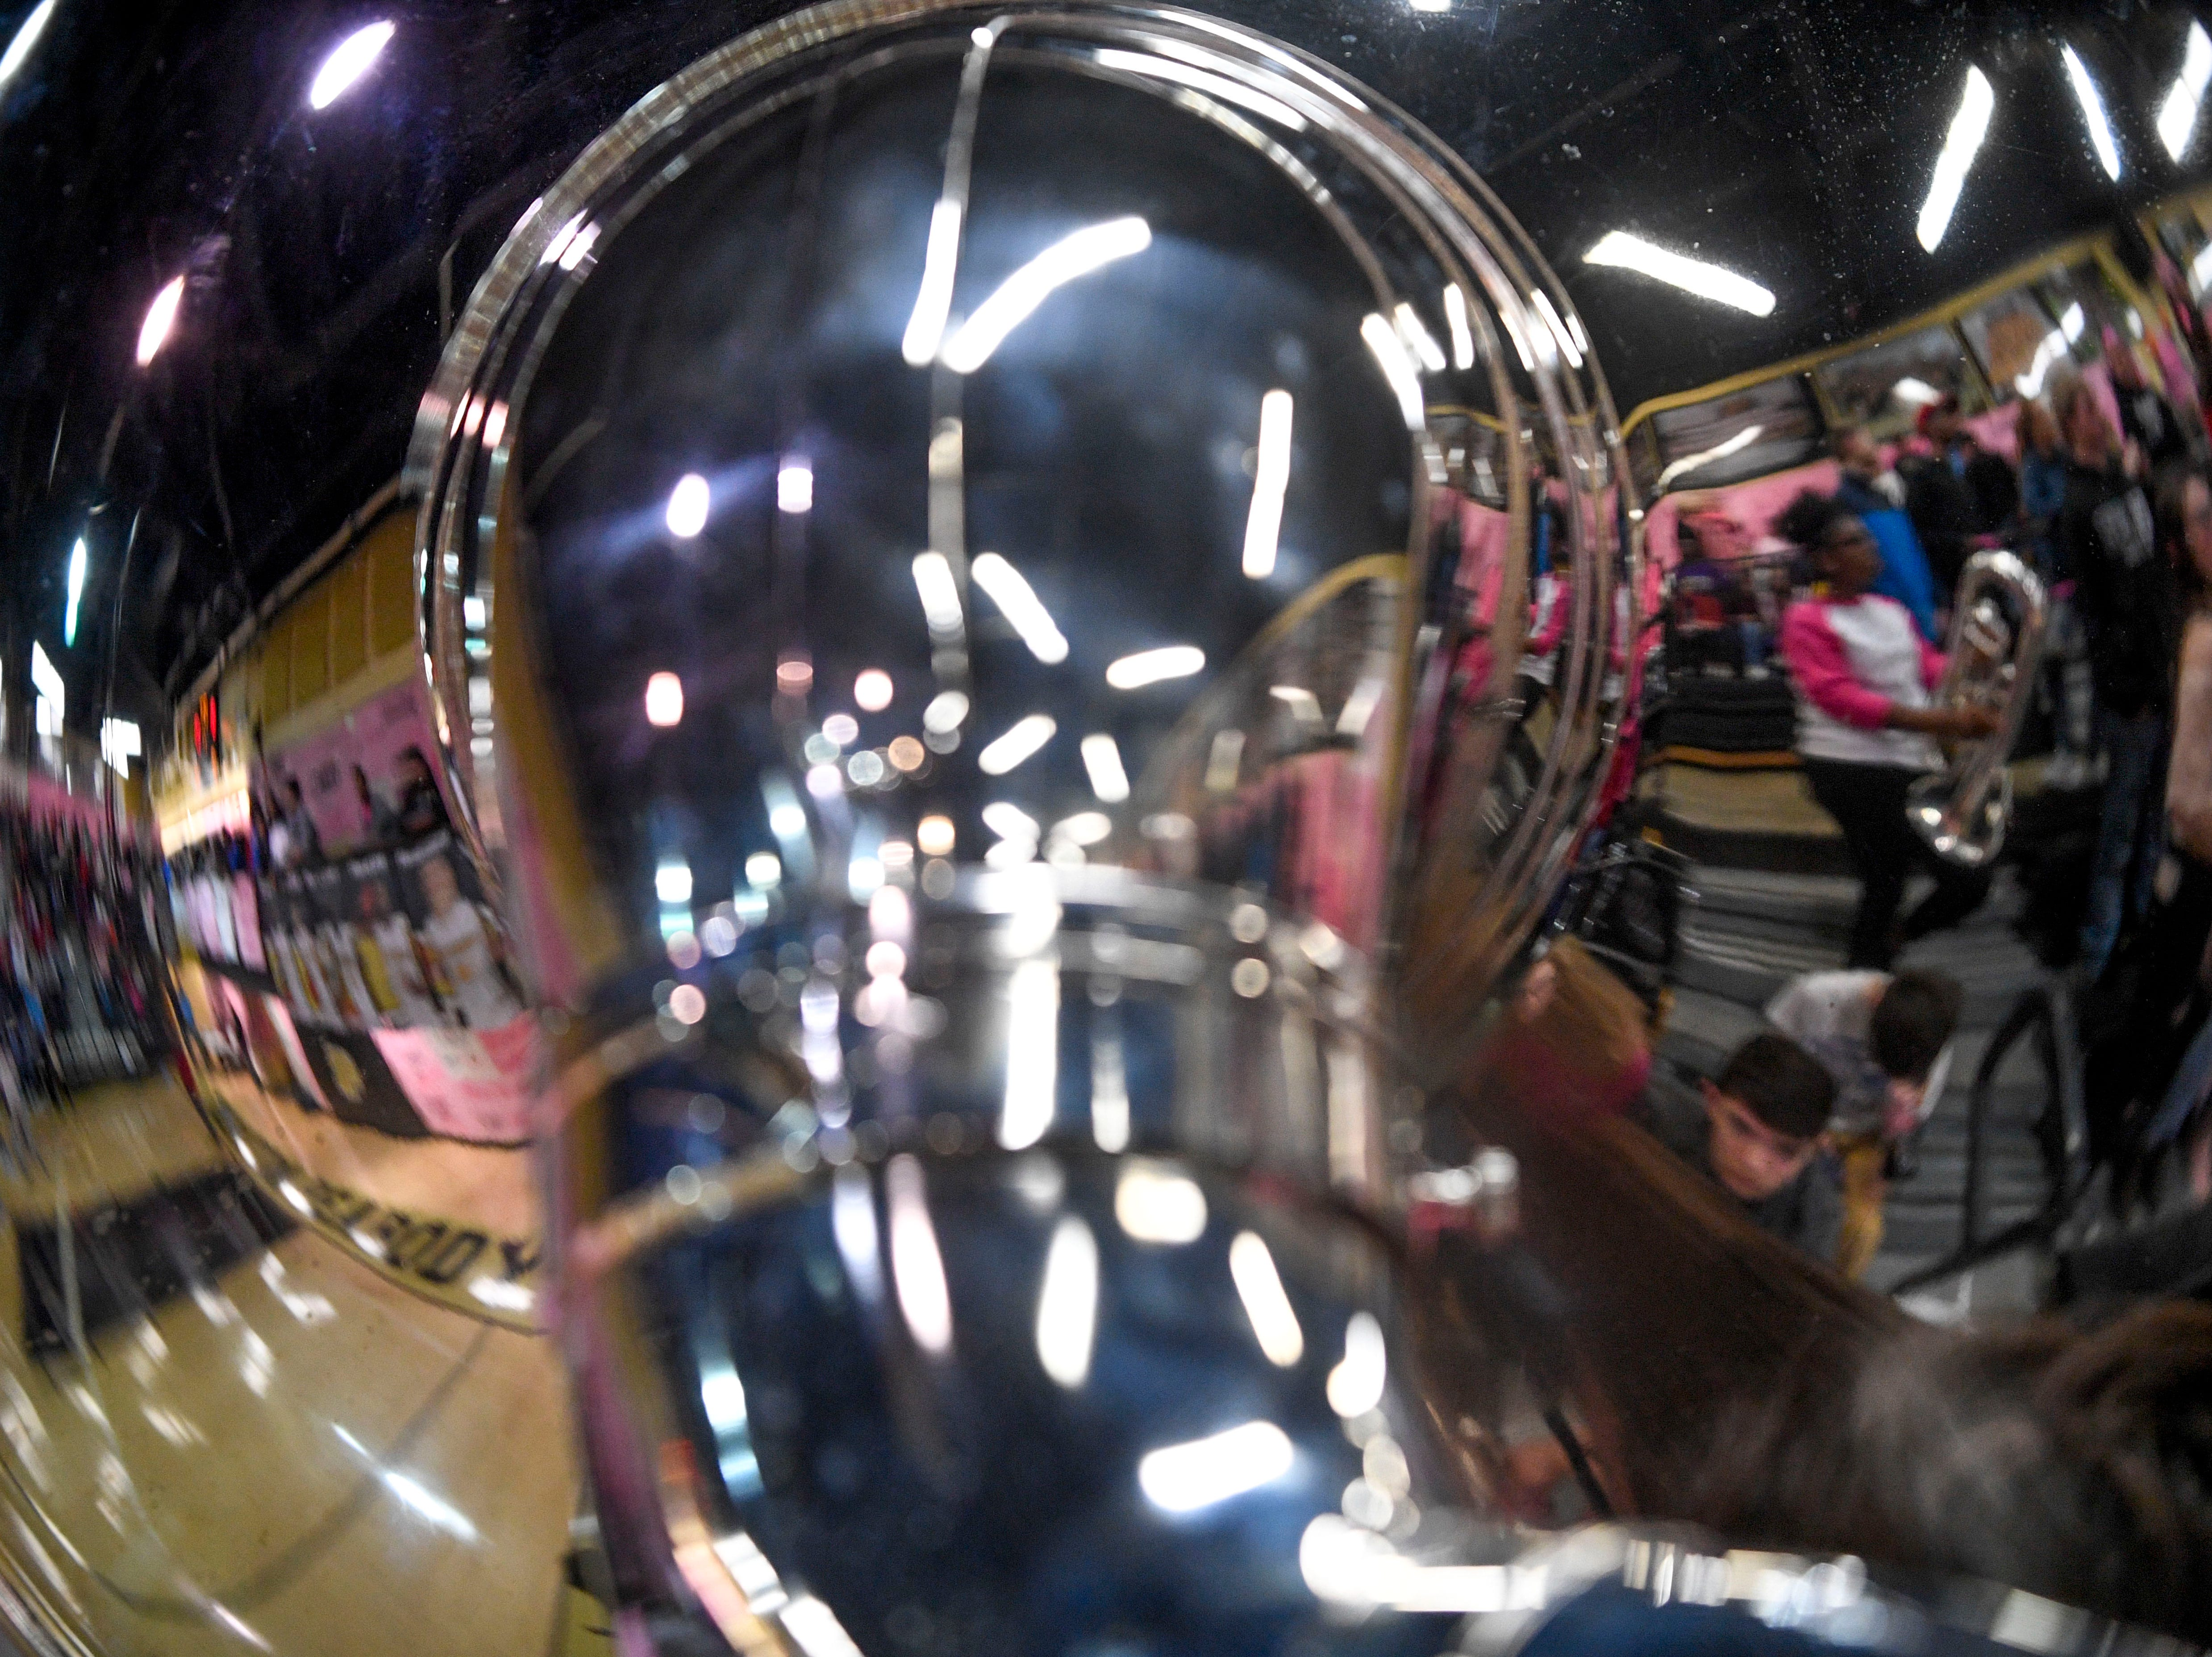 Fans and band members reflect in a sousaphone in a TSSAA basketball game between Peabody and Gibson County at Peabody High School in Trenton, Tenn., on Friday, Feb. 8, 2019.